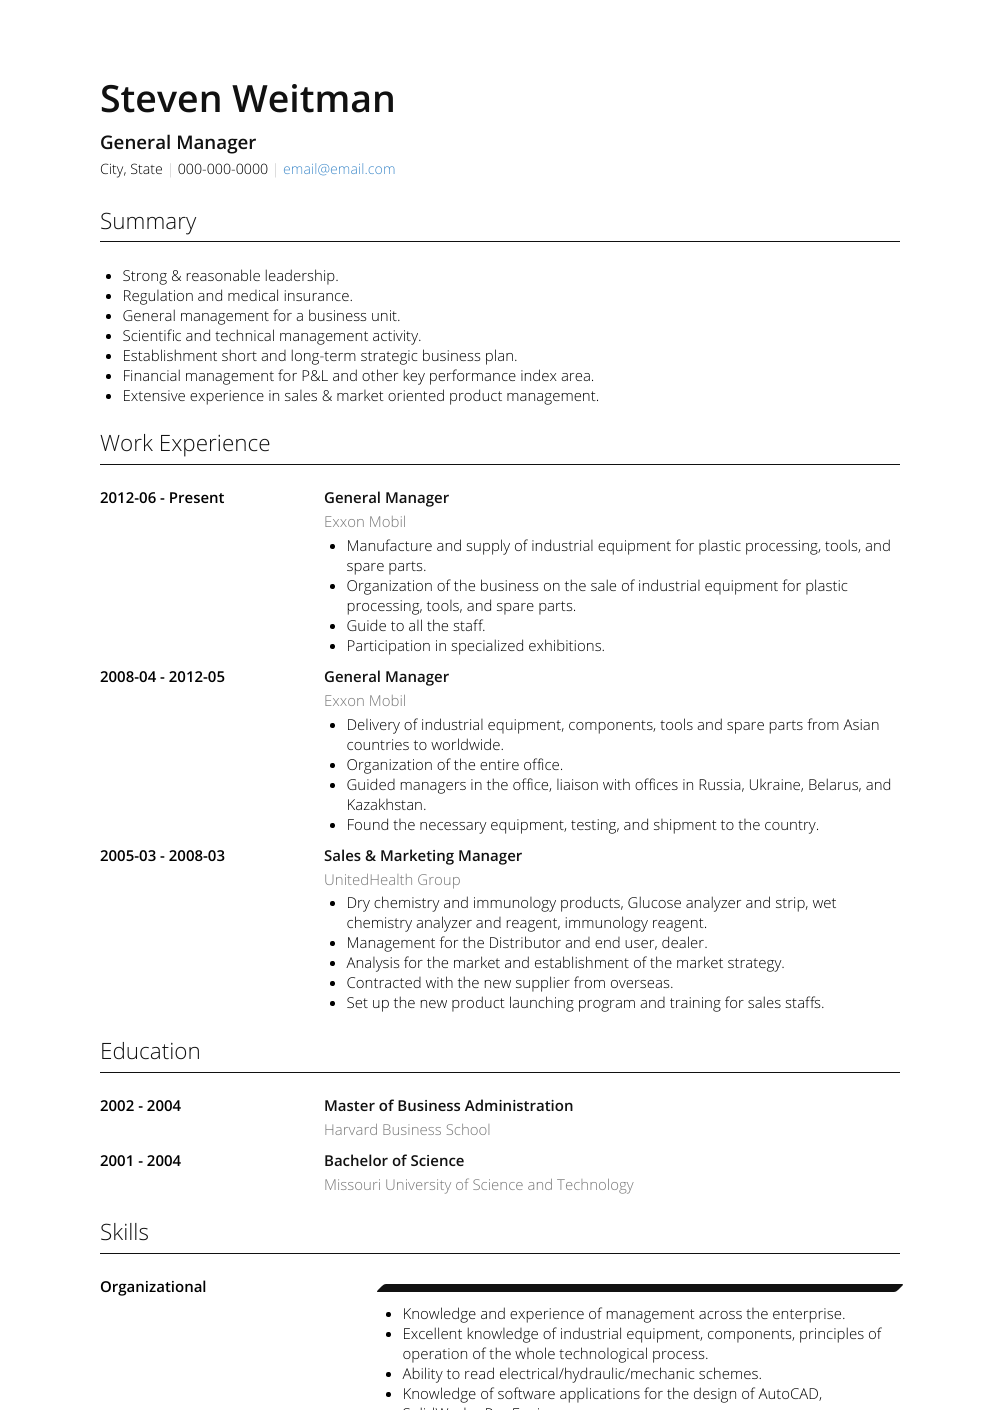 General Manager Resume Sample and Template